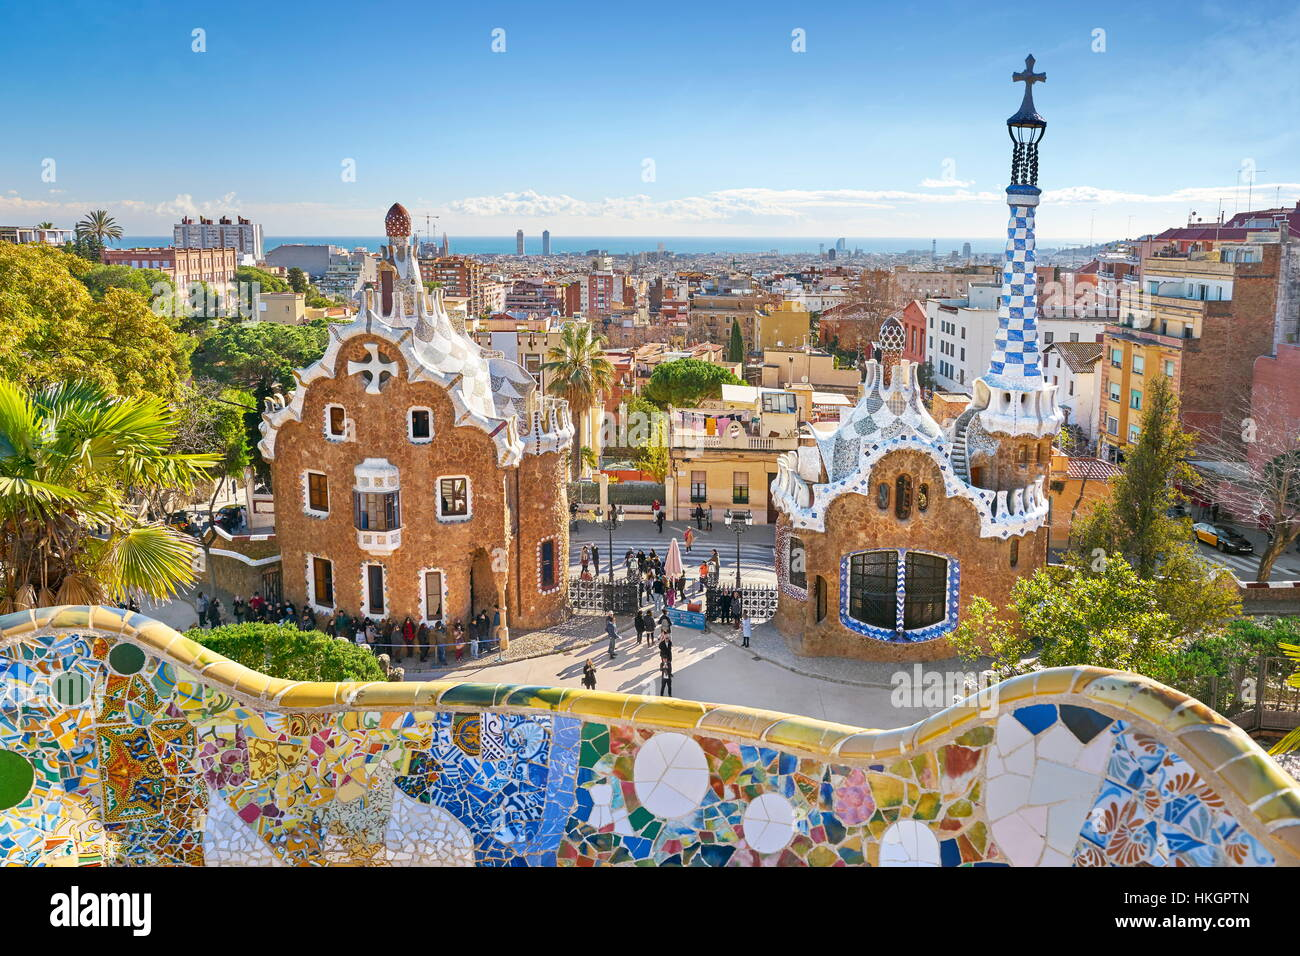 Parc Guell d'Antoni Gaudi, Barcelone, Espagne Photo Stock